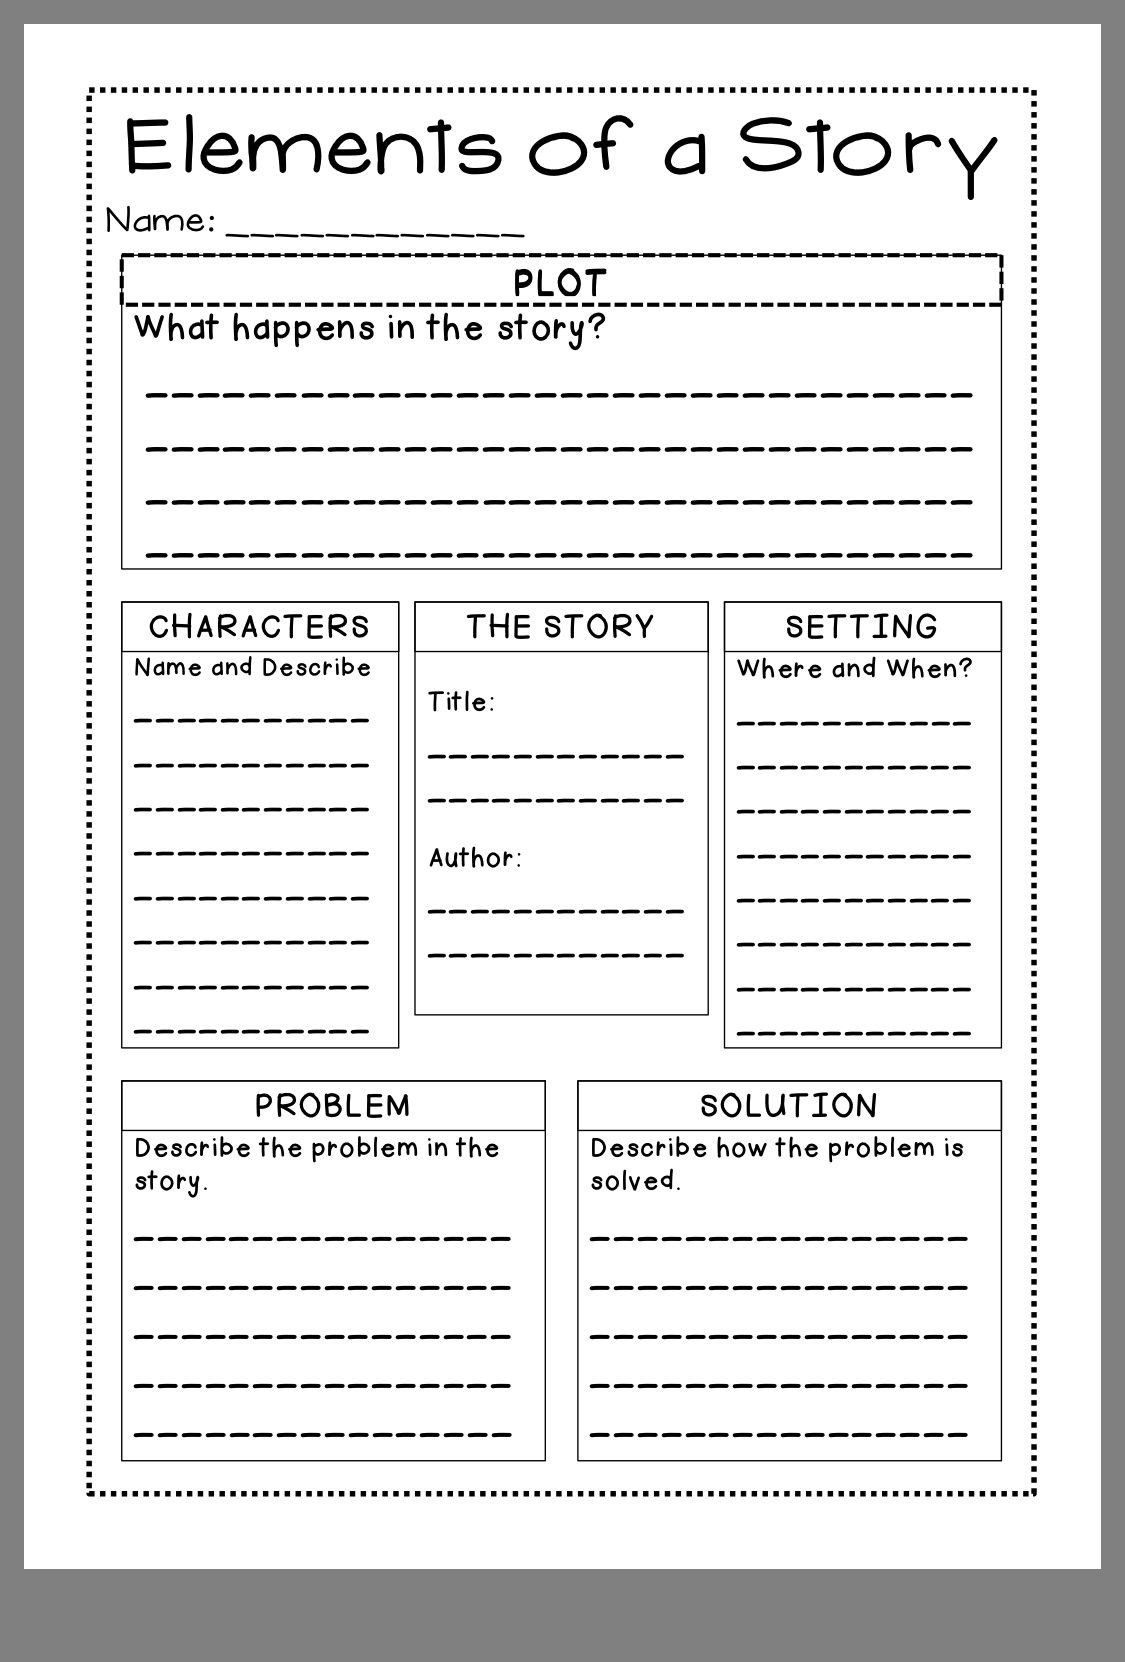 medium resolution of Story Elements Worksheet 4th Grade Pin by Jill Brewington On Story Elements    Story elements worksheet